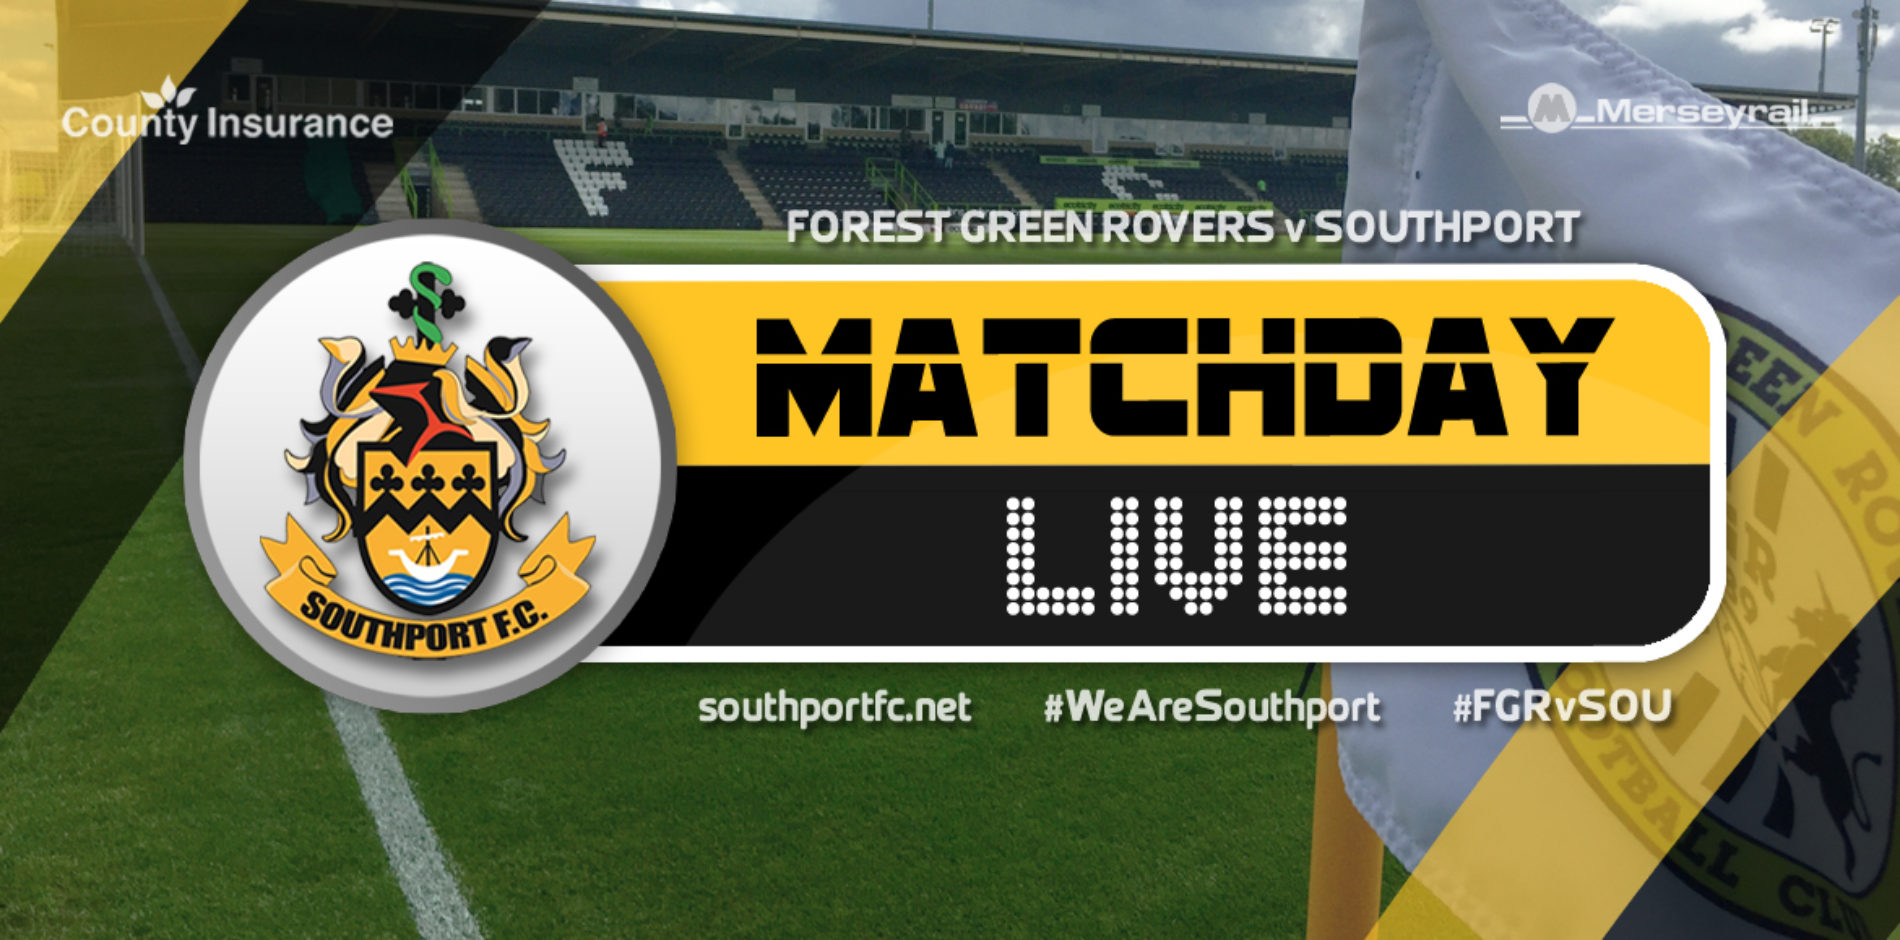 MATCHDAY LIVE | Forest Green Rovers V Southport